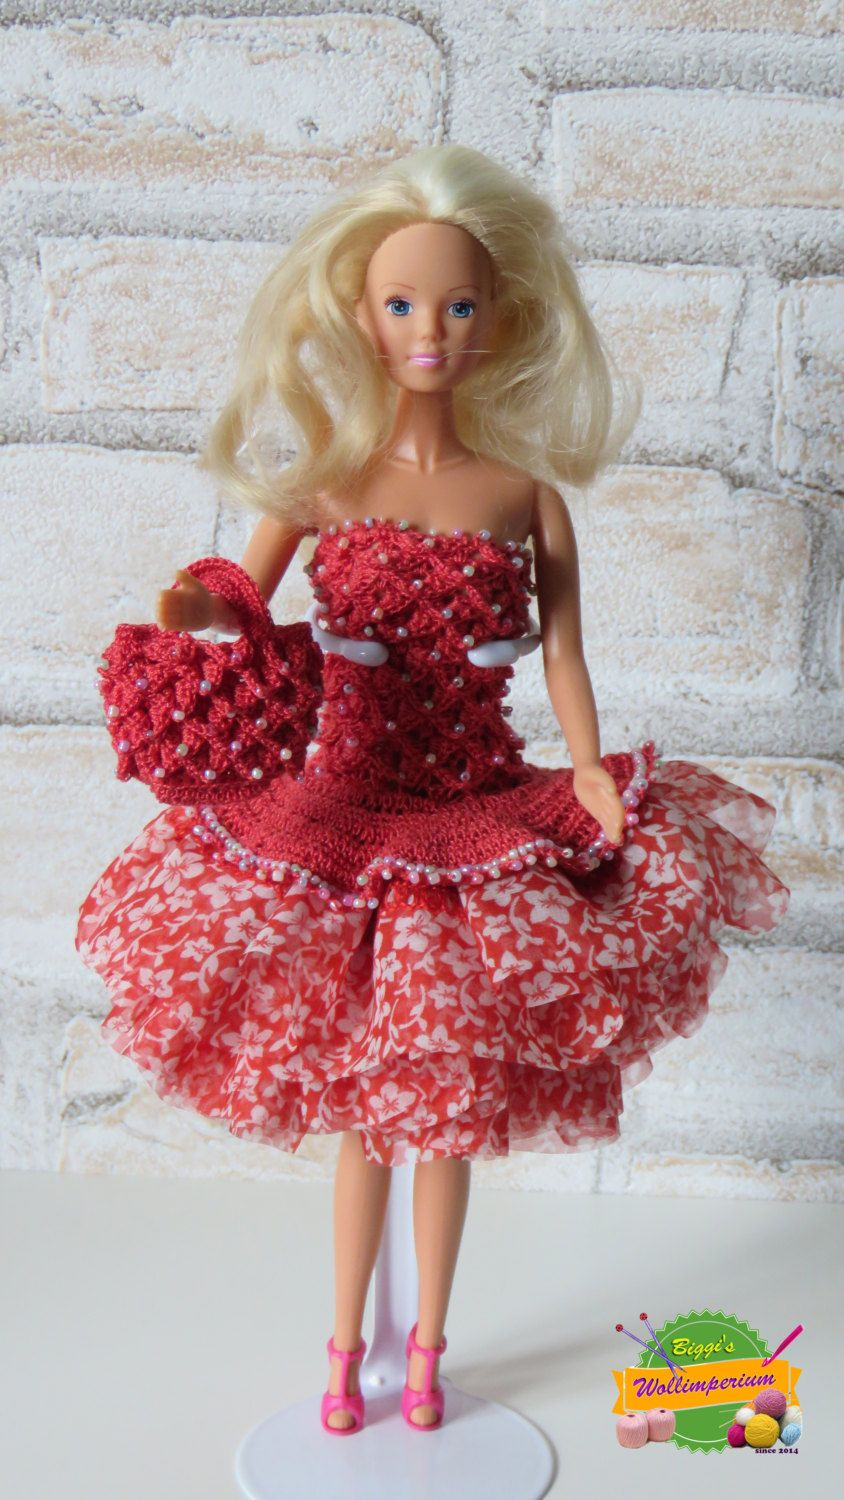 Dress for Barbie doll | Pinterest | Barbie, Puppe und Puppenkleider